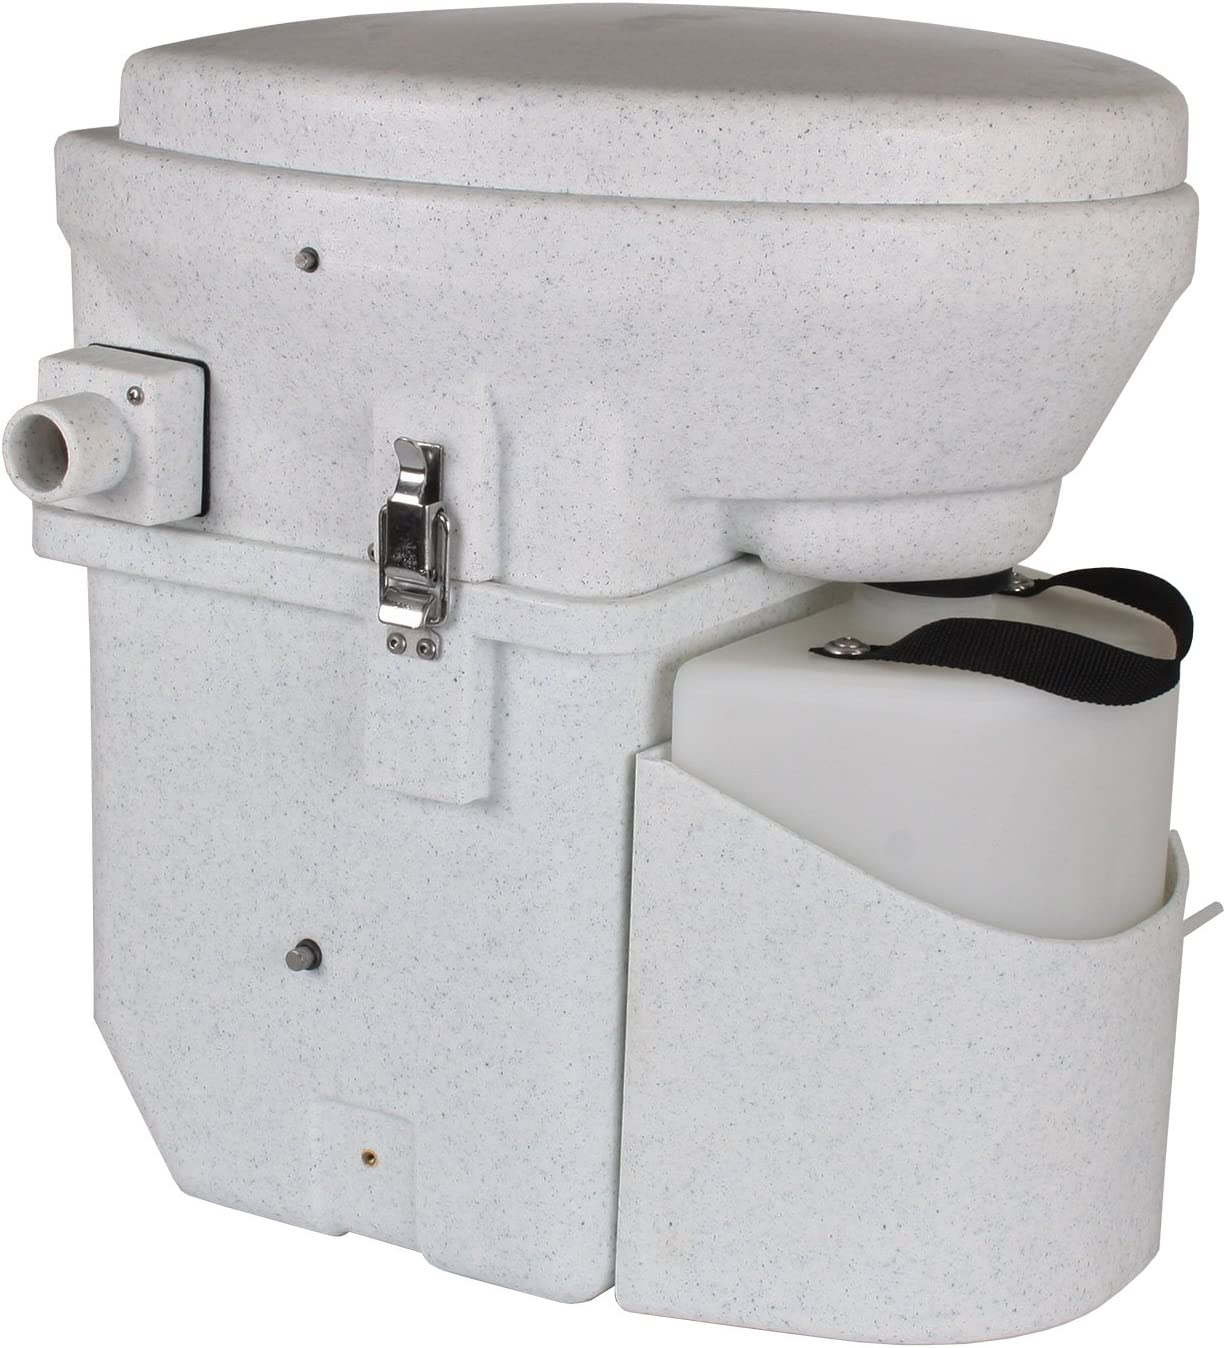 Nature's Head Composting RV Toilet